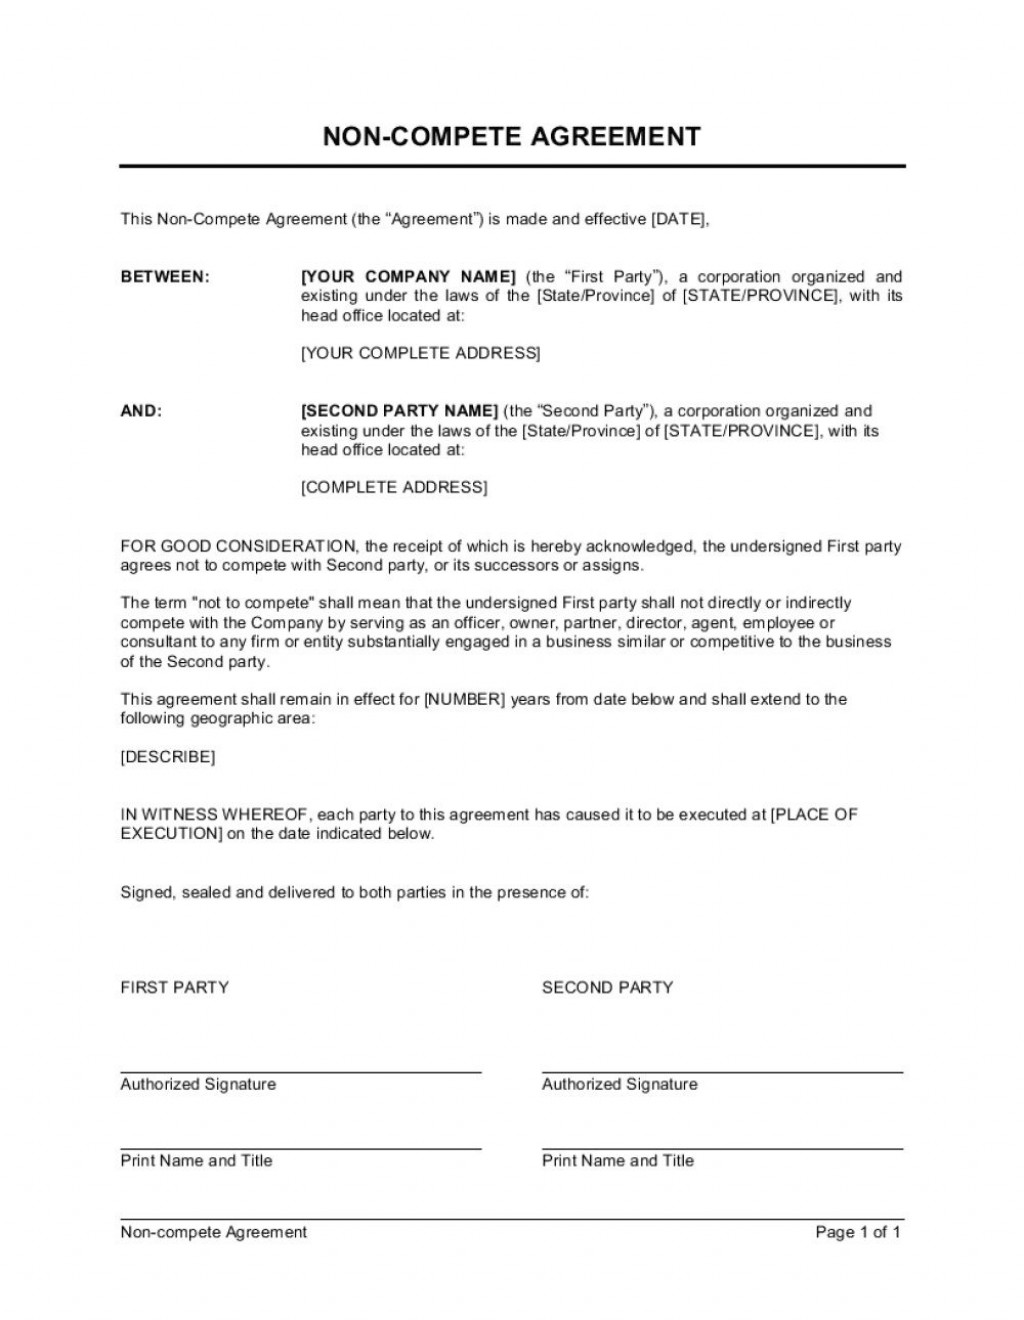 004 Unbelievable Non Compete Agreement Template Word Example  Microsoft Non-compete FreeLarge